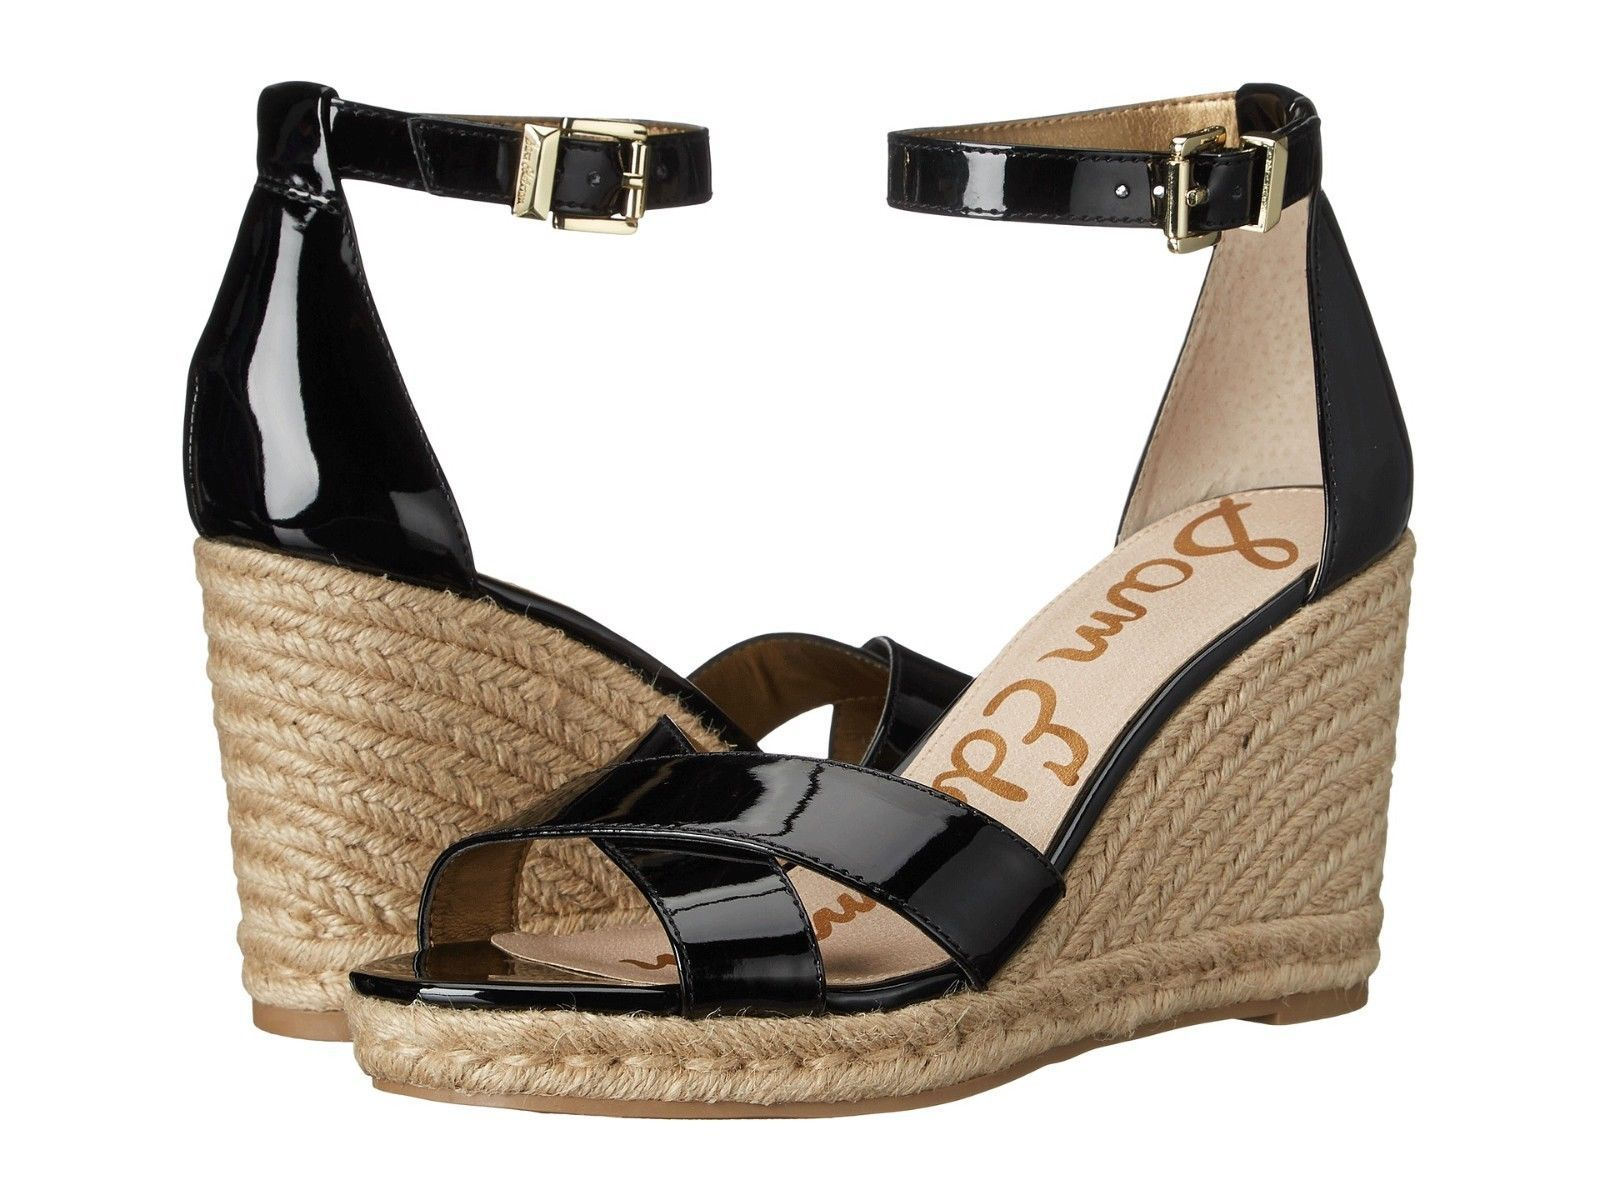 18c2d9a6e47 Women s Sam Edelman Brenda Wedge Sandals